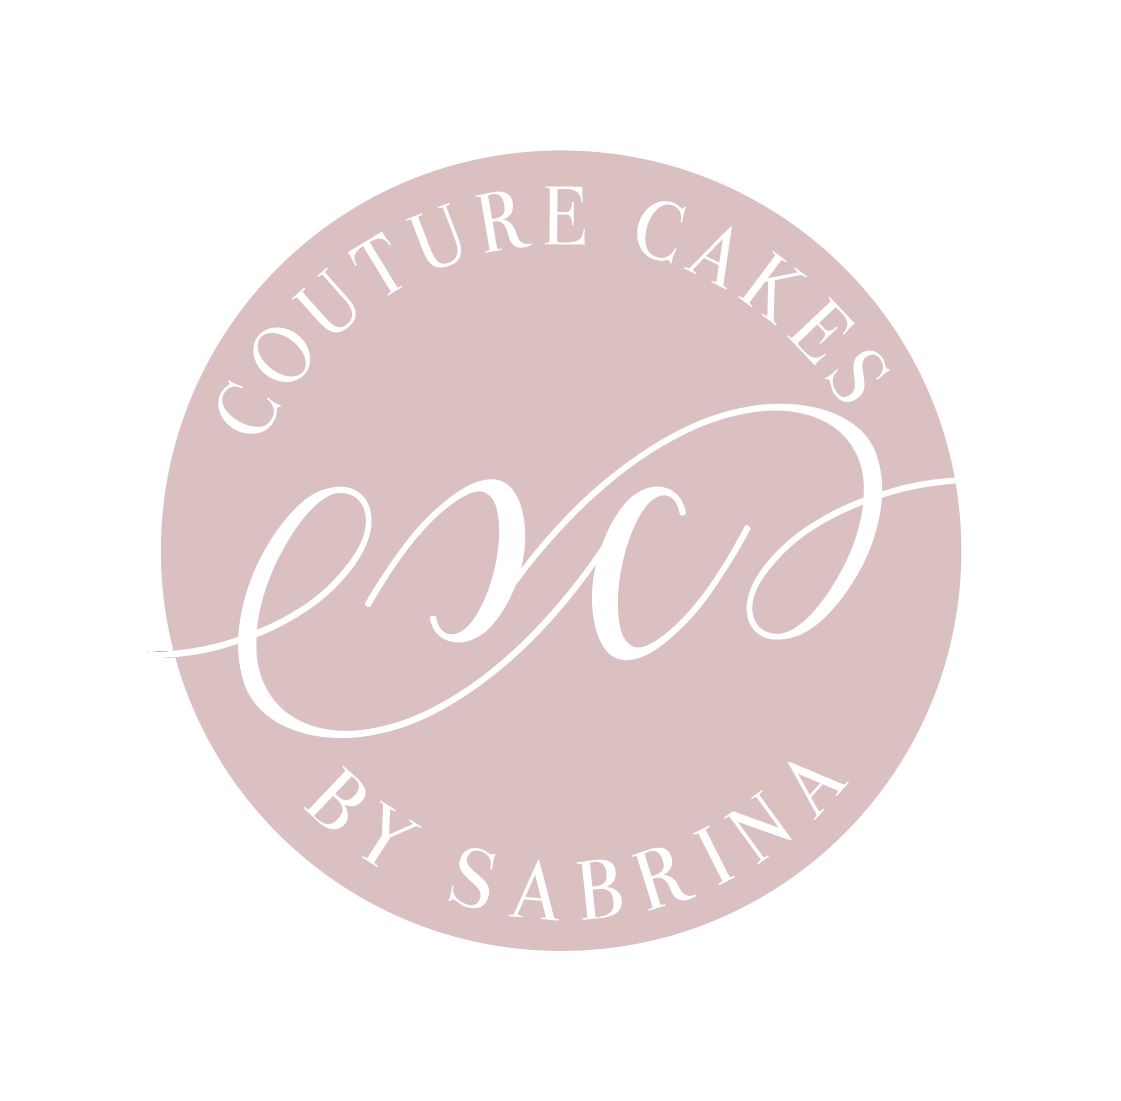 Couture Cakes by Sabrina Training Academy